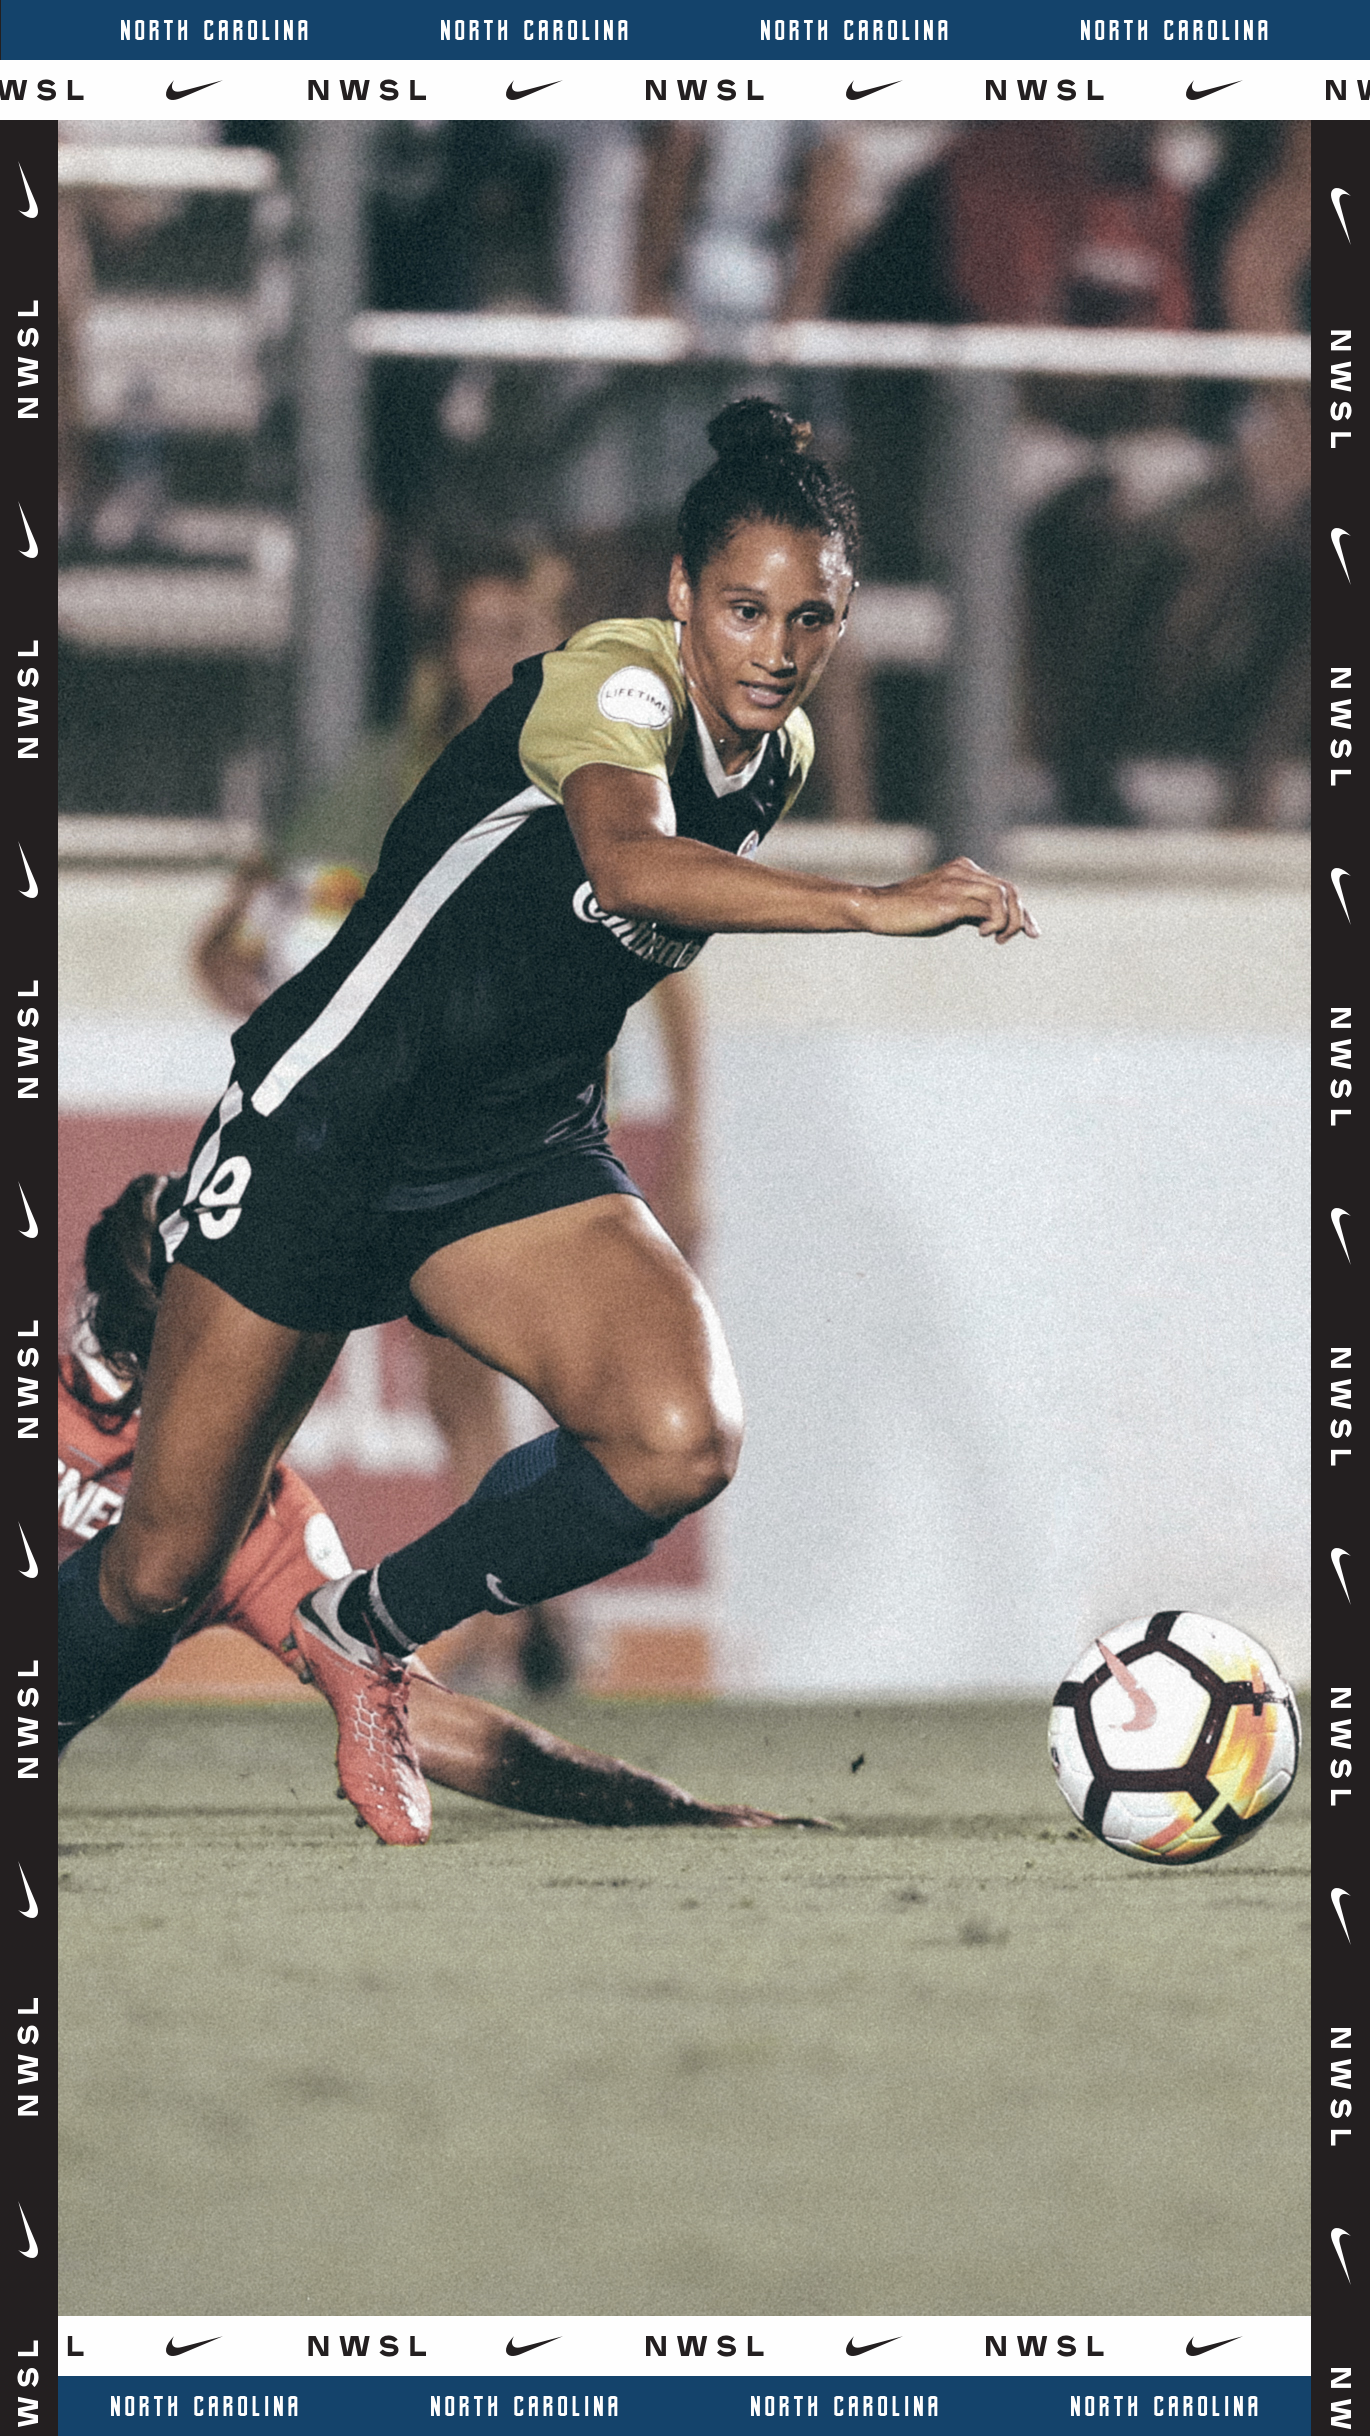 NIKE-NWSL-IG-STORY-12.png